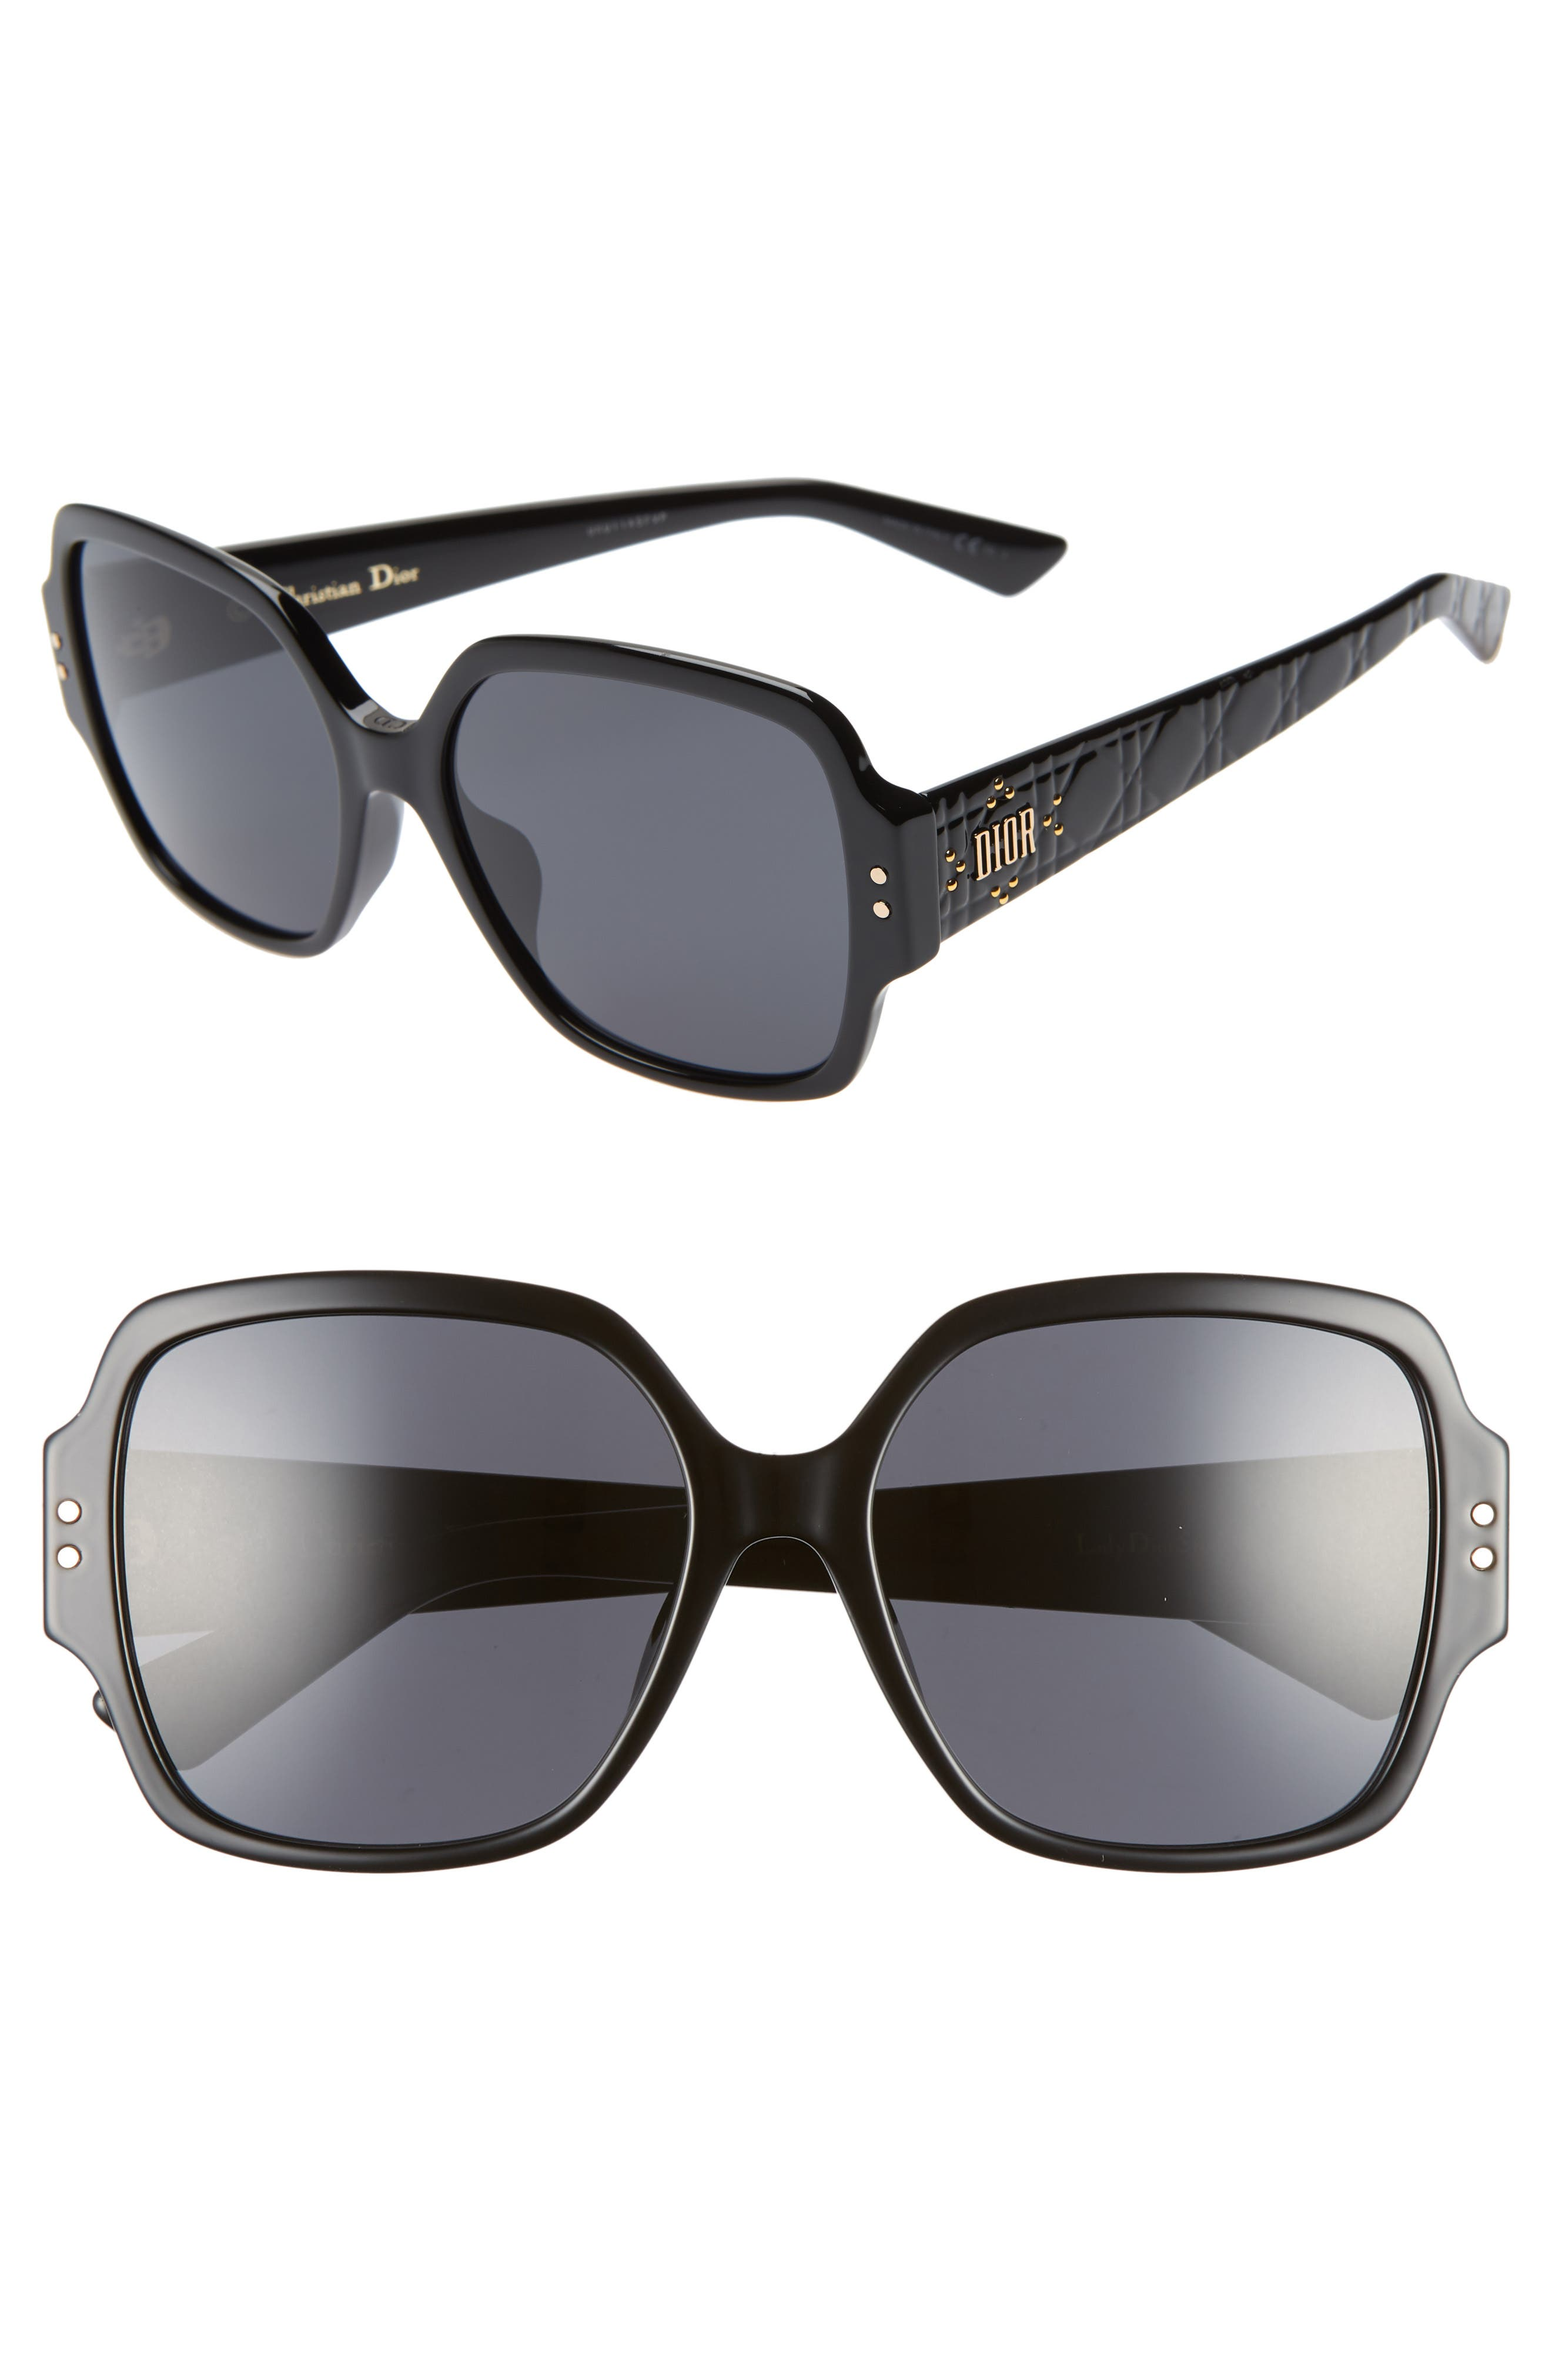 DIOR,                             Lady Dior Stud 57mm Special Fit Square Sunglasses,                             Main thumbnail 1, color,                             BLACK